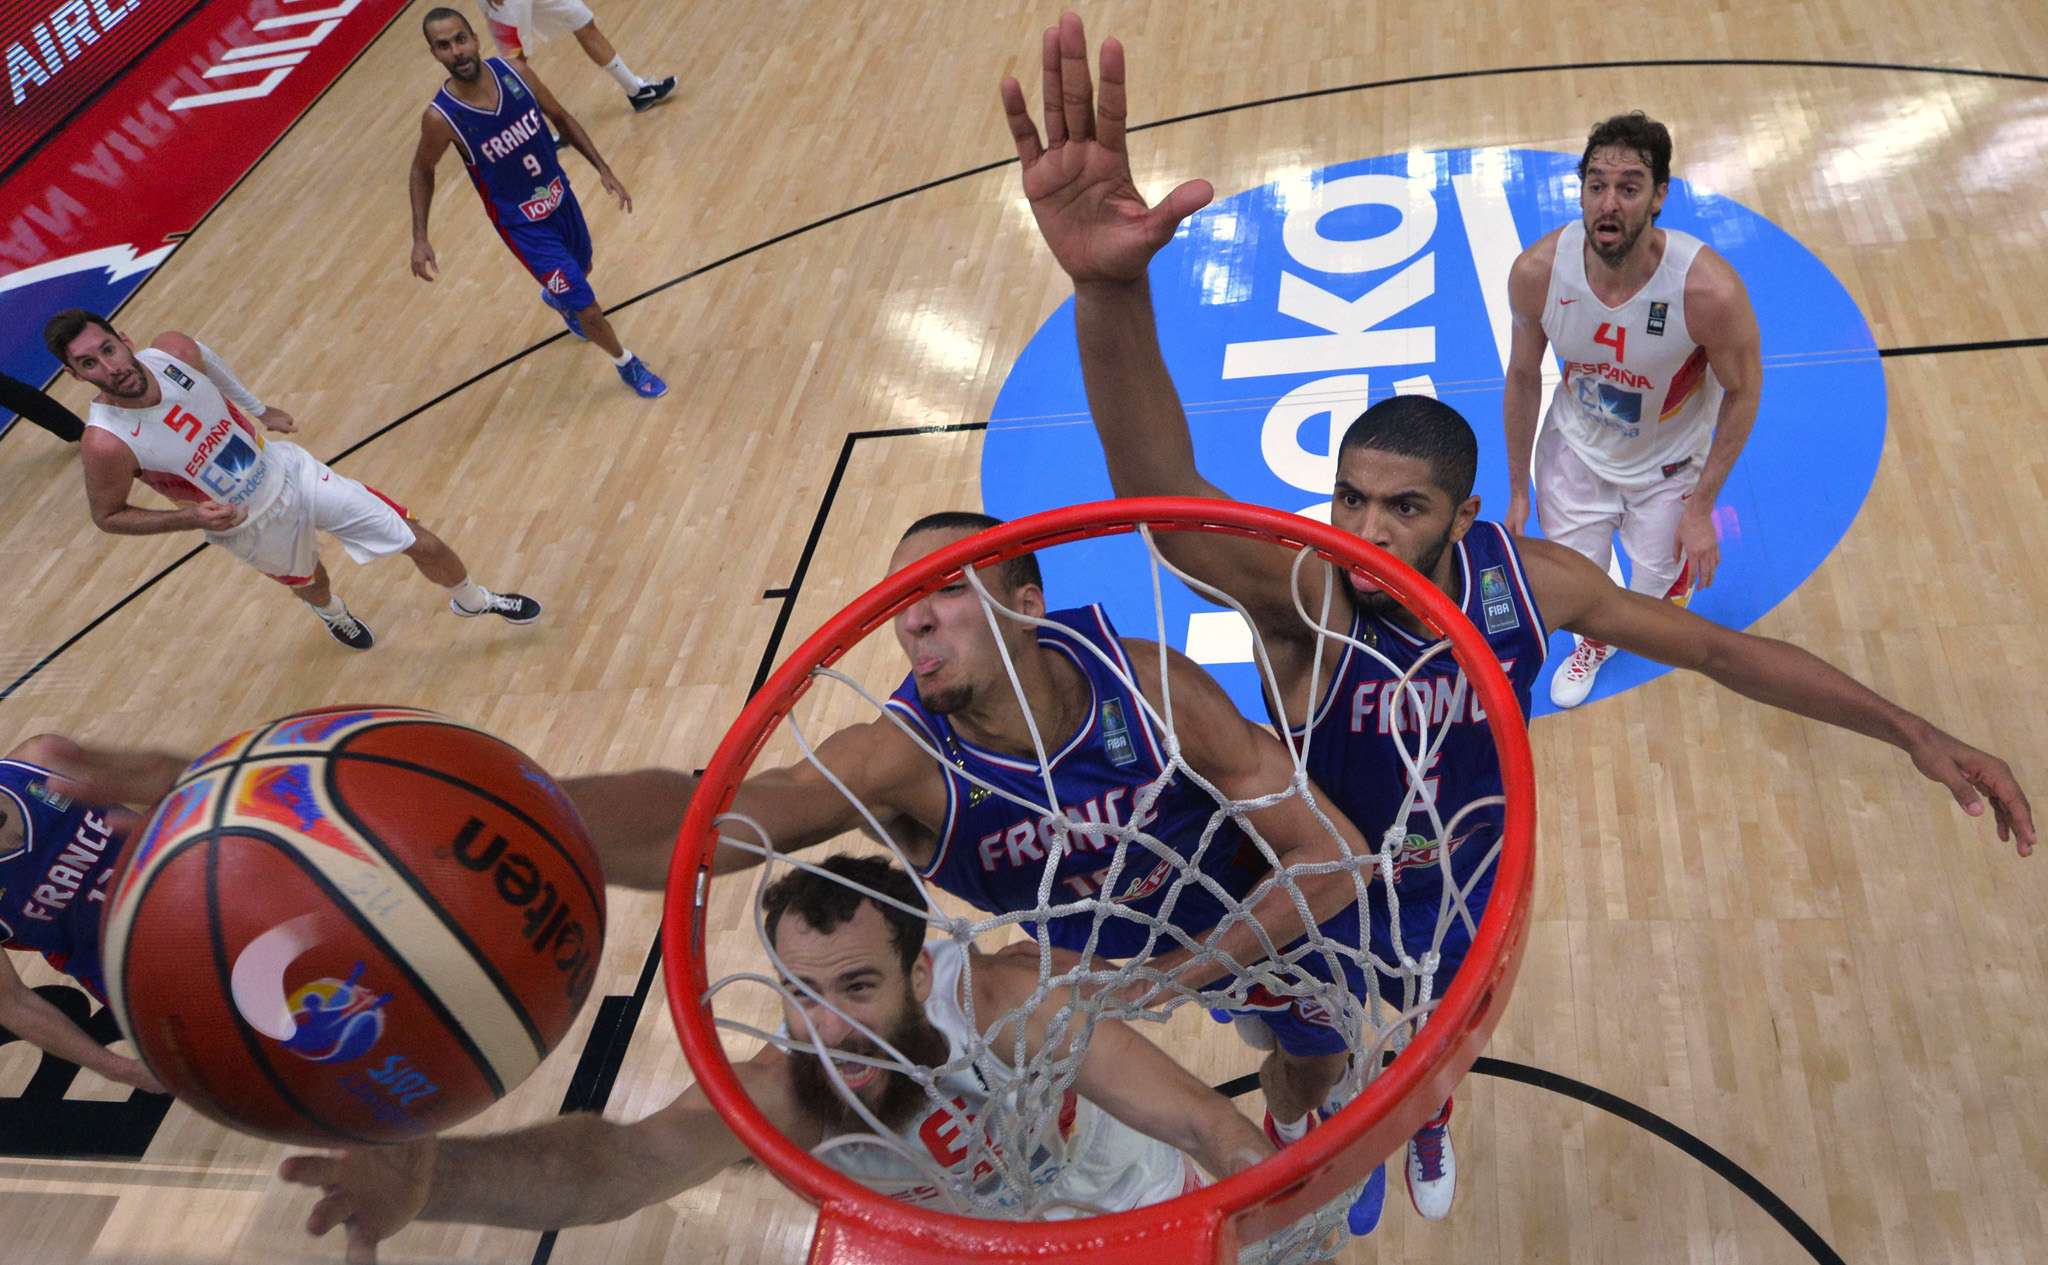 Spain's Sergio Rodriguez, bottom, dunks a basket while France's Rudy Gobert, center, and Nicolas Batum, right, try to block him during the EuroBasket European Basketball Championship semifinal match between France and Spain at Pierre Mauroy stadium in Lille, northern France.